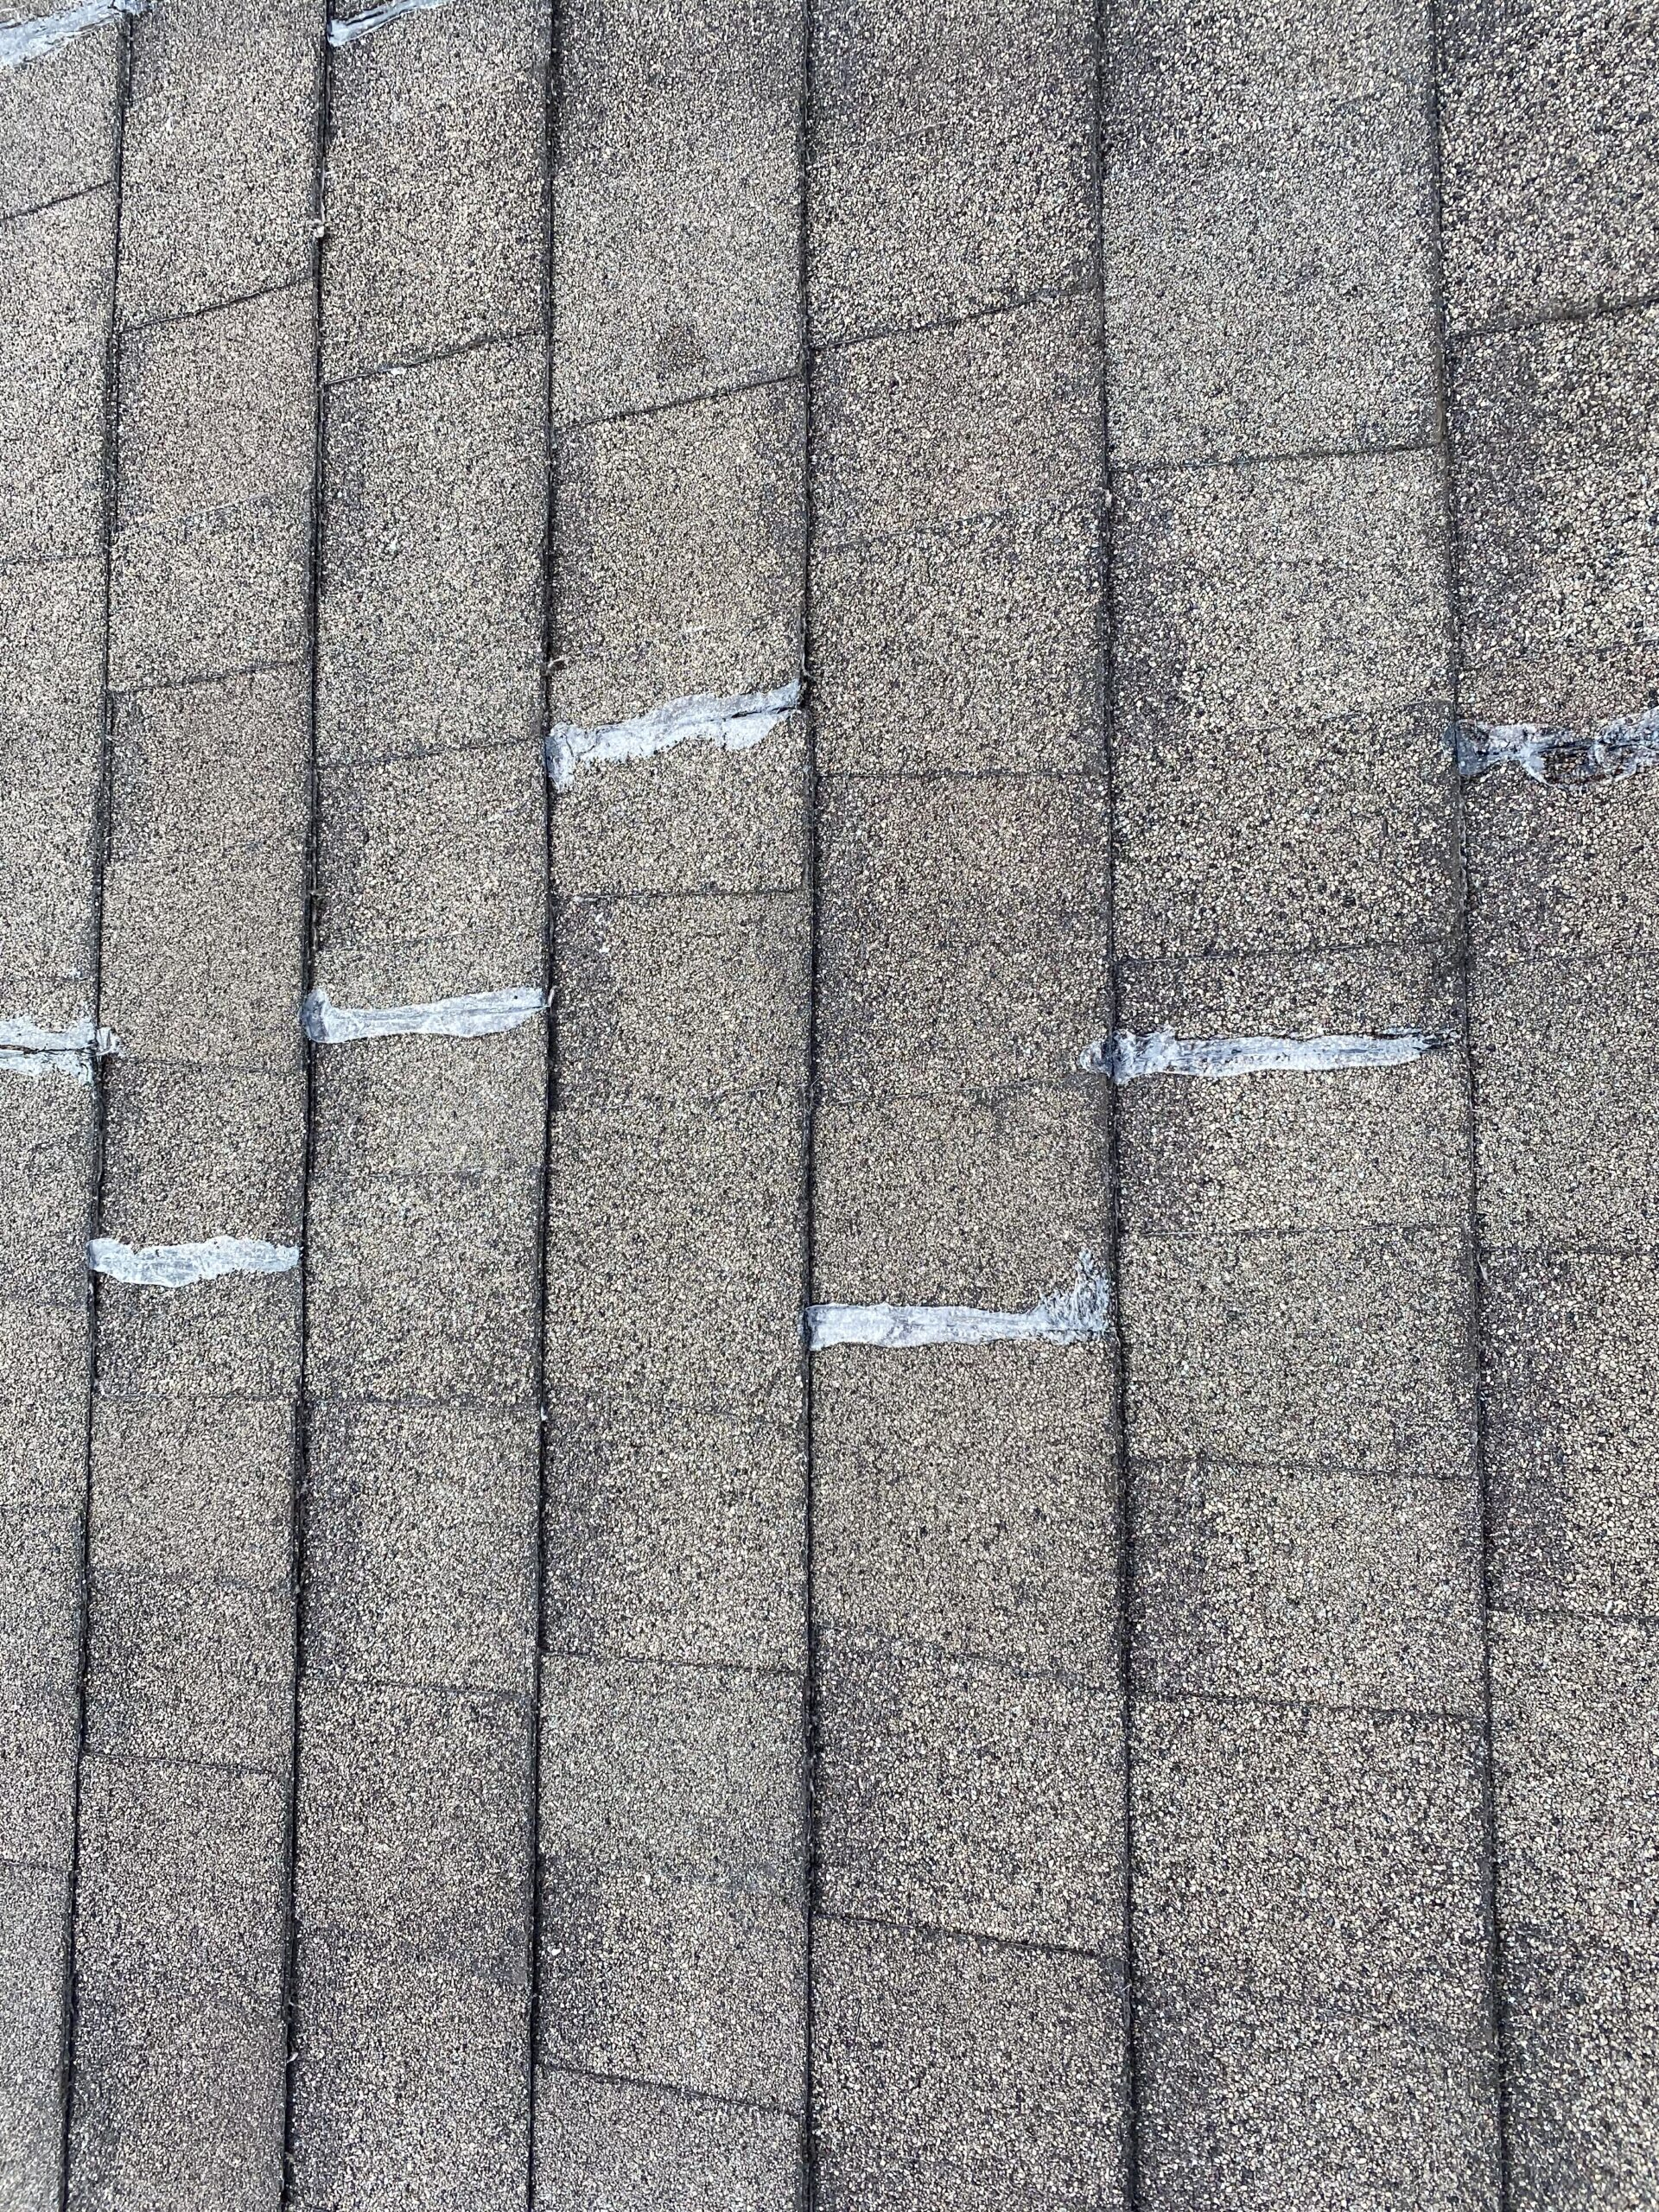 This is a picture of the unions of shingles that have been sealed with clear caulk